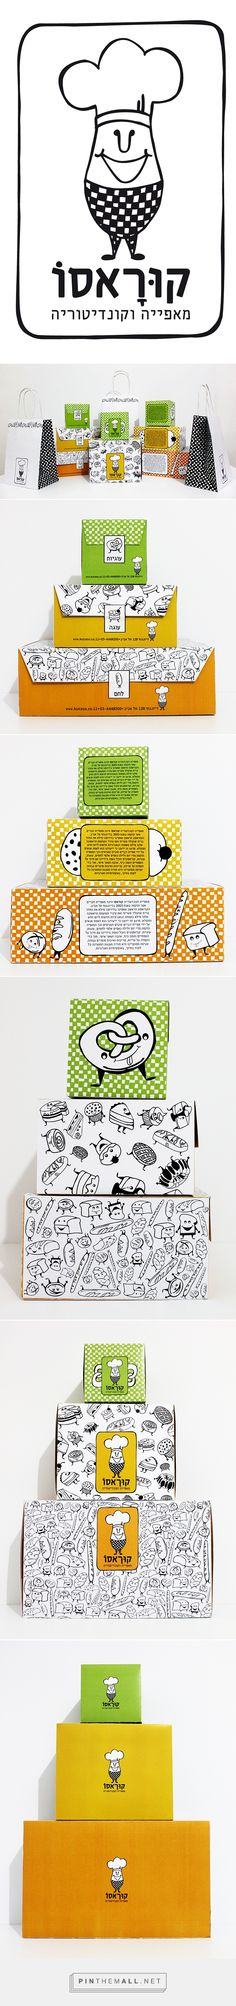 Branding, graphic design and packaging for bakery on Behance by Elinor Weiss, Tel Aviv, Israel curated by Packaging Diva PD. The cutest little bakery icons. Look at the pretzel : )